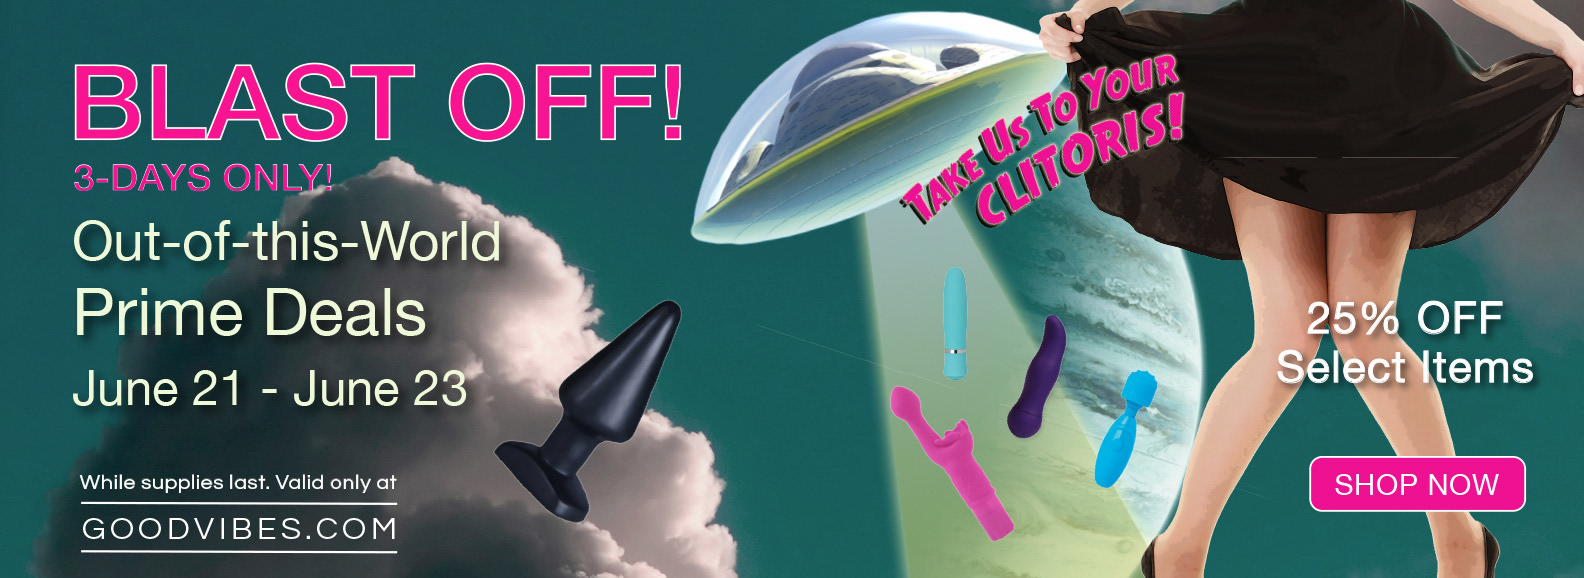 Blast Off Sale 25% Off Select Items